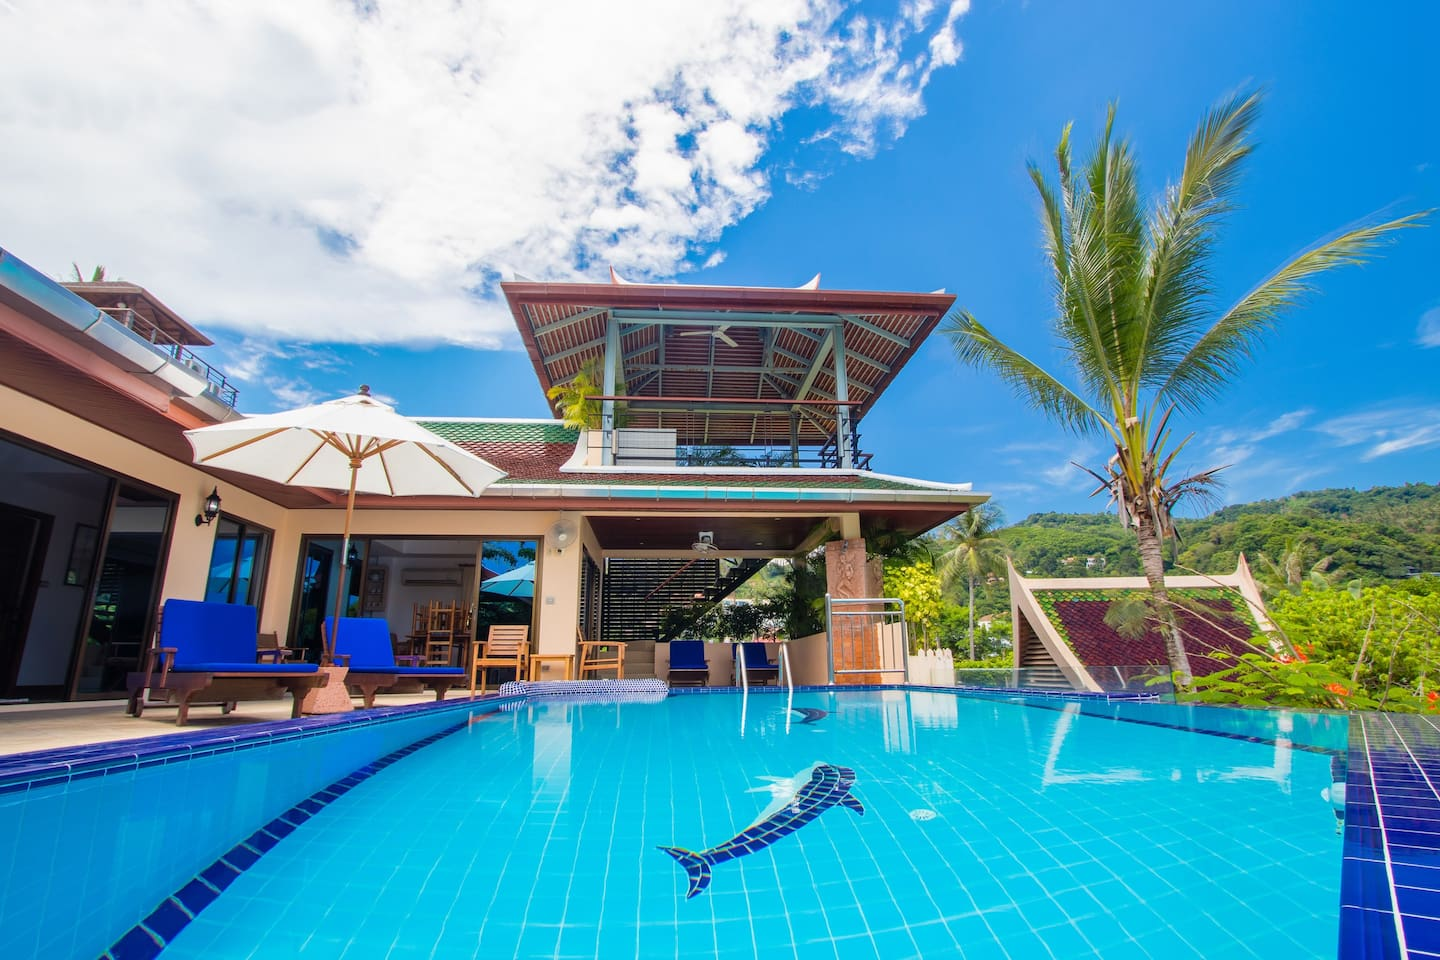 infinity pool house. 4 Bed Luxury Villa With Large Private Infinity Pool, Ocean And Sunset Views. Pool House